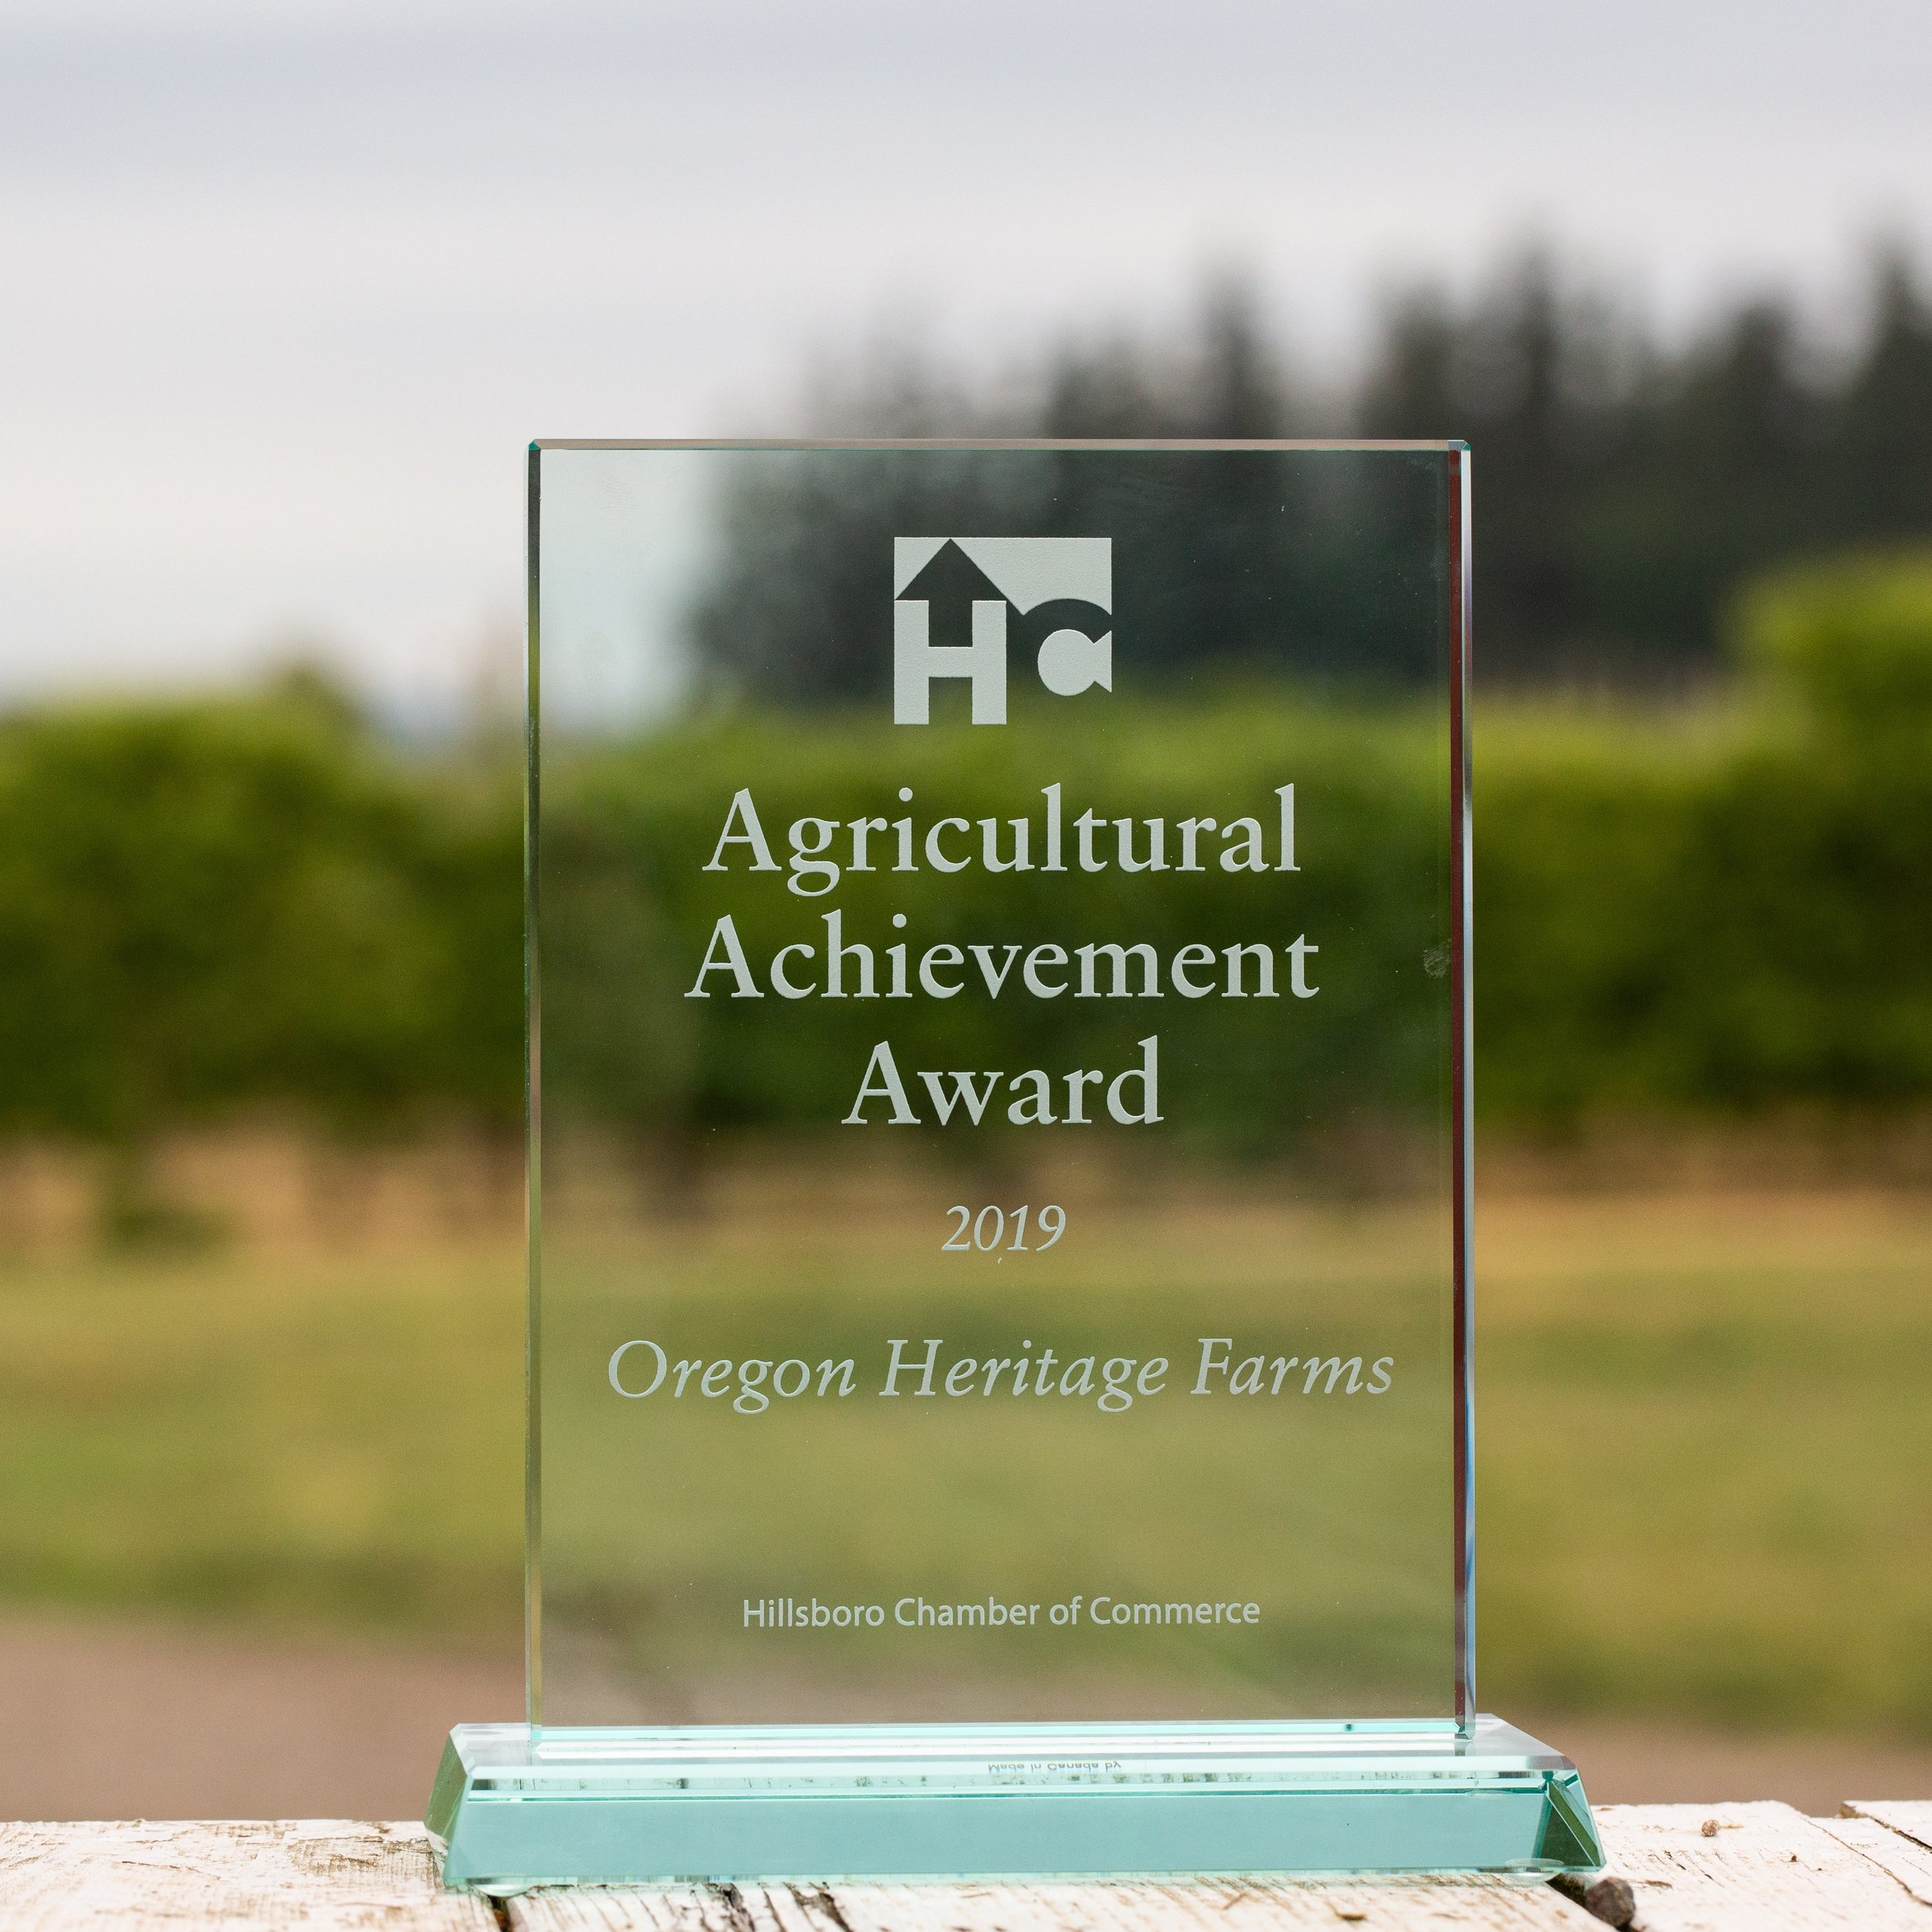 Oregon Heritage Farms Award Photo